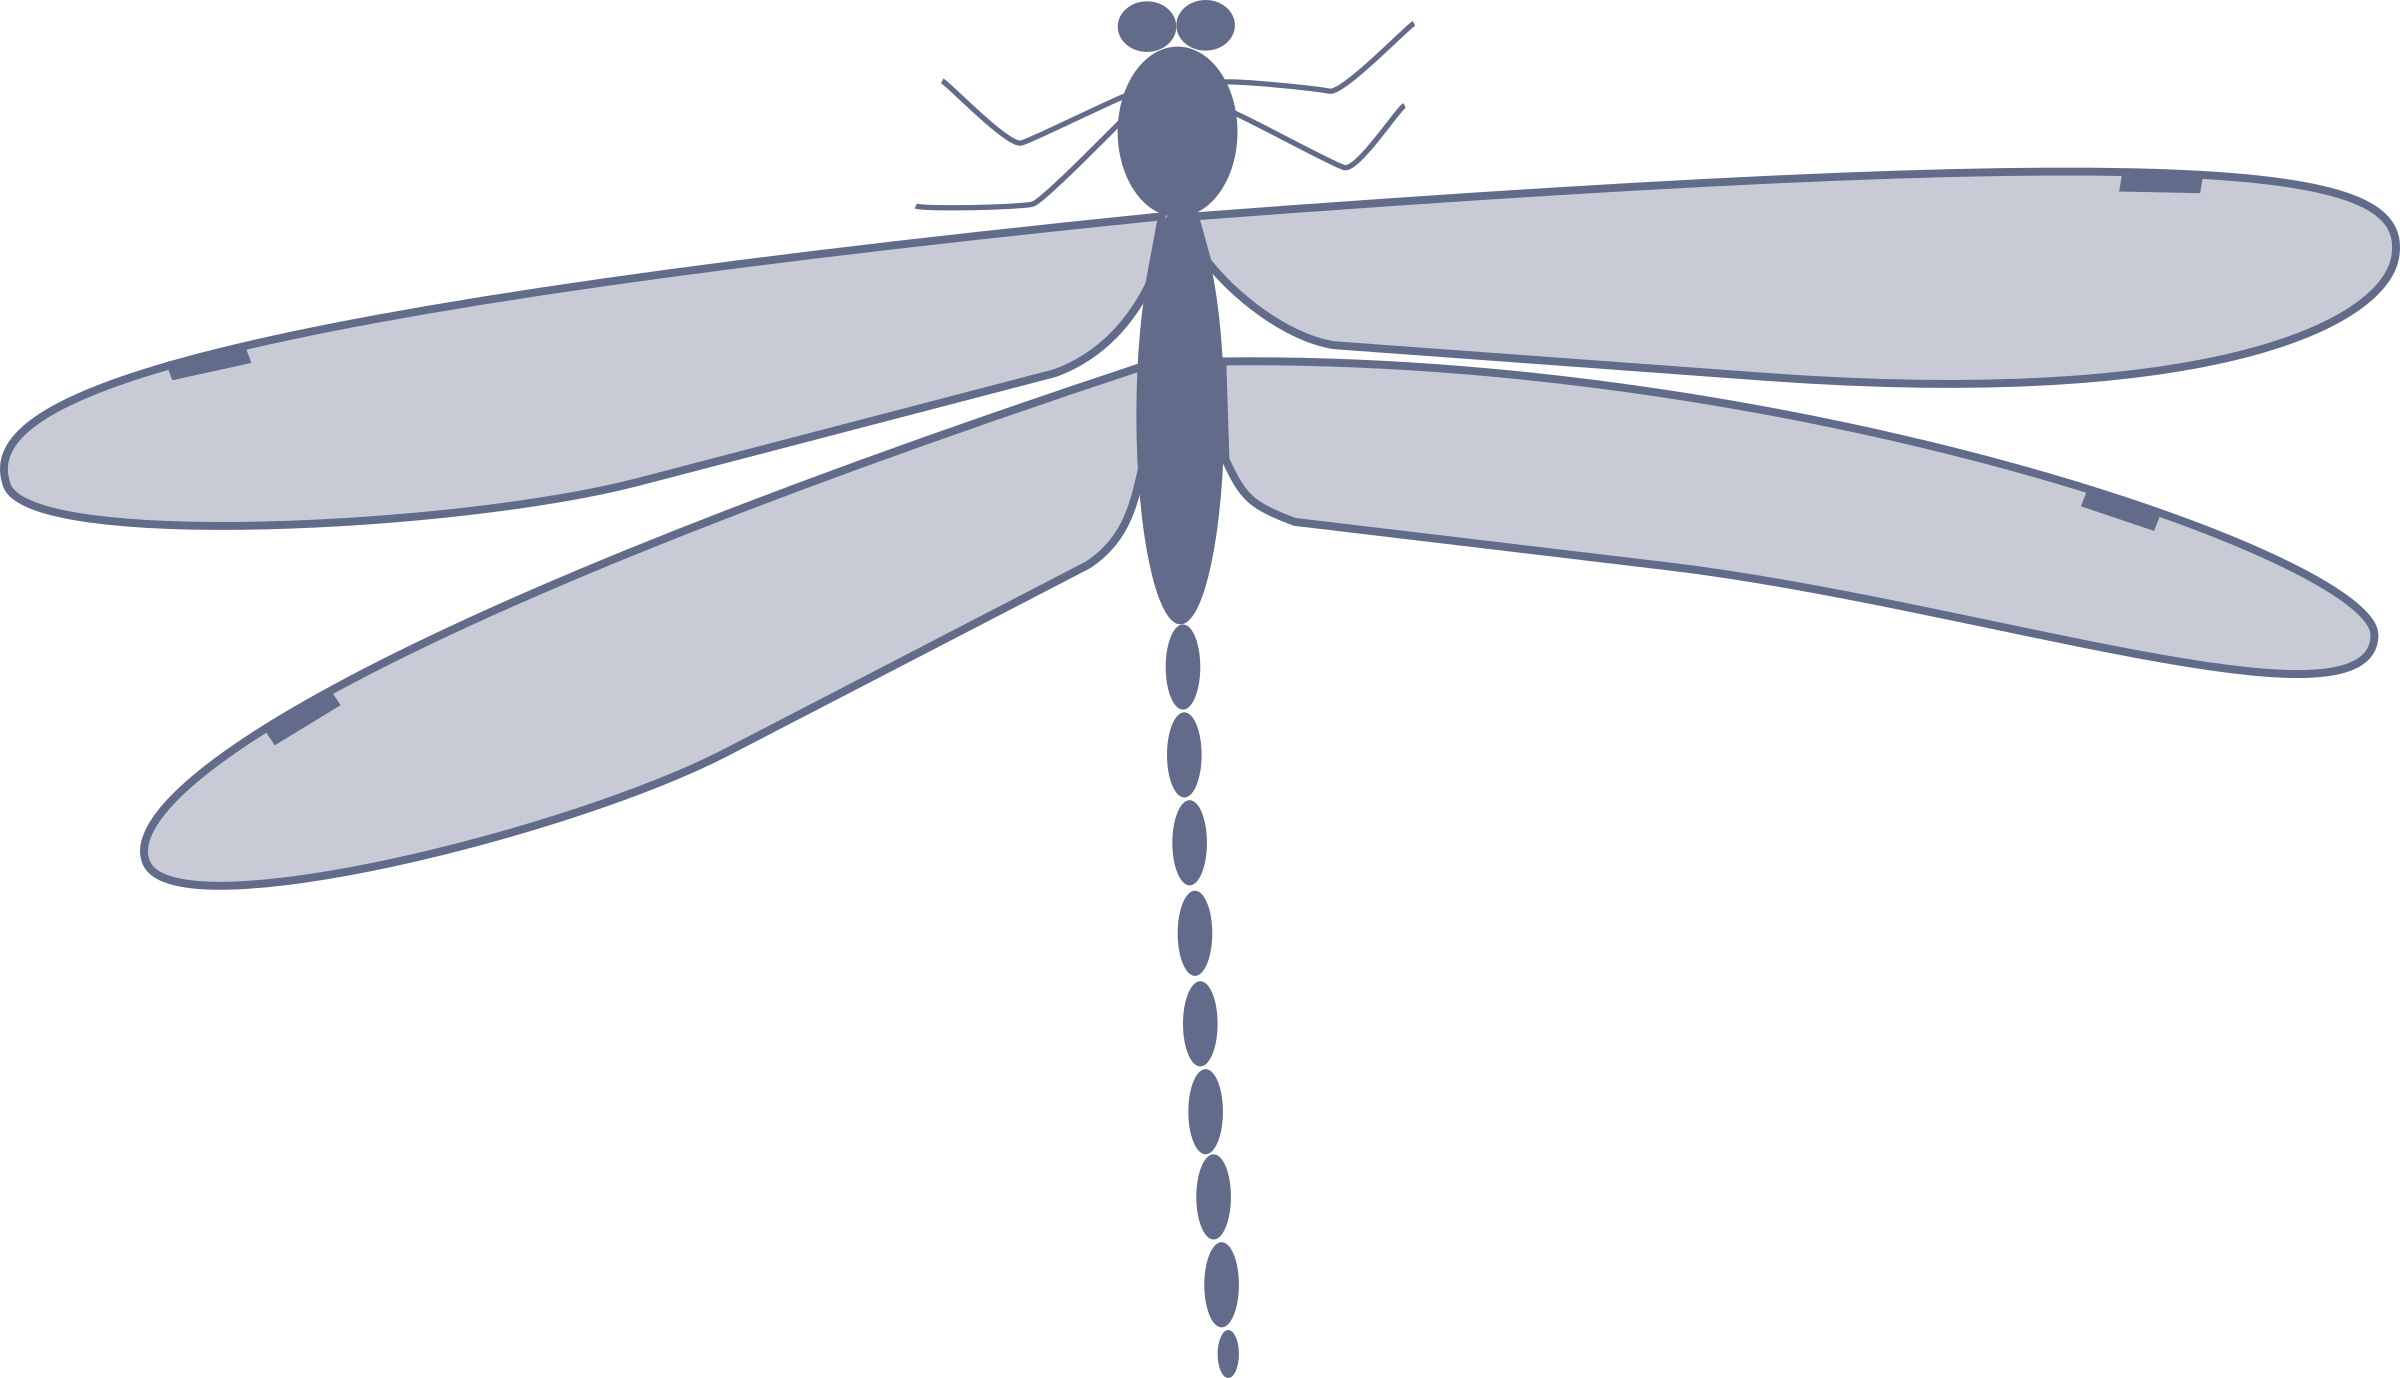 Damselfly clipart #17, Download drawings